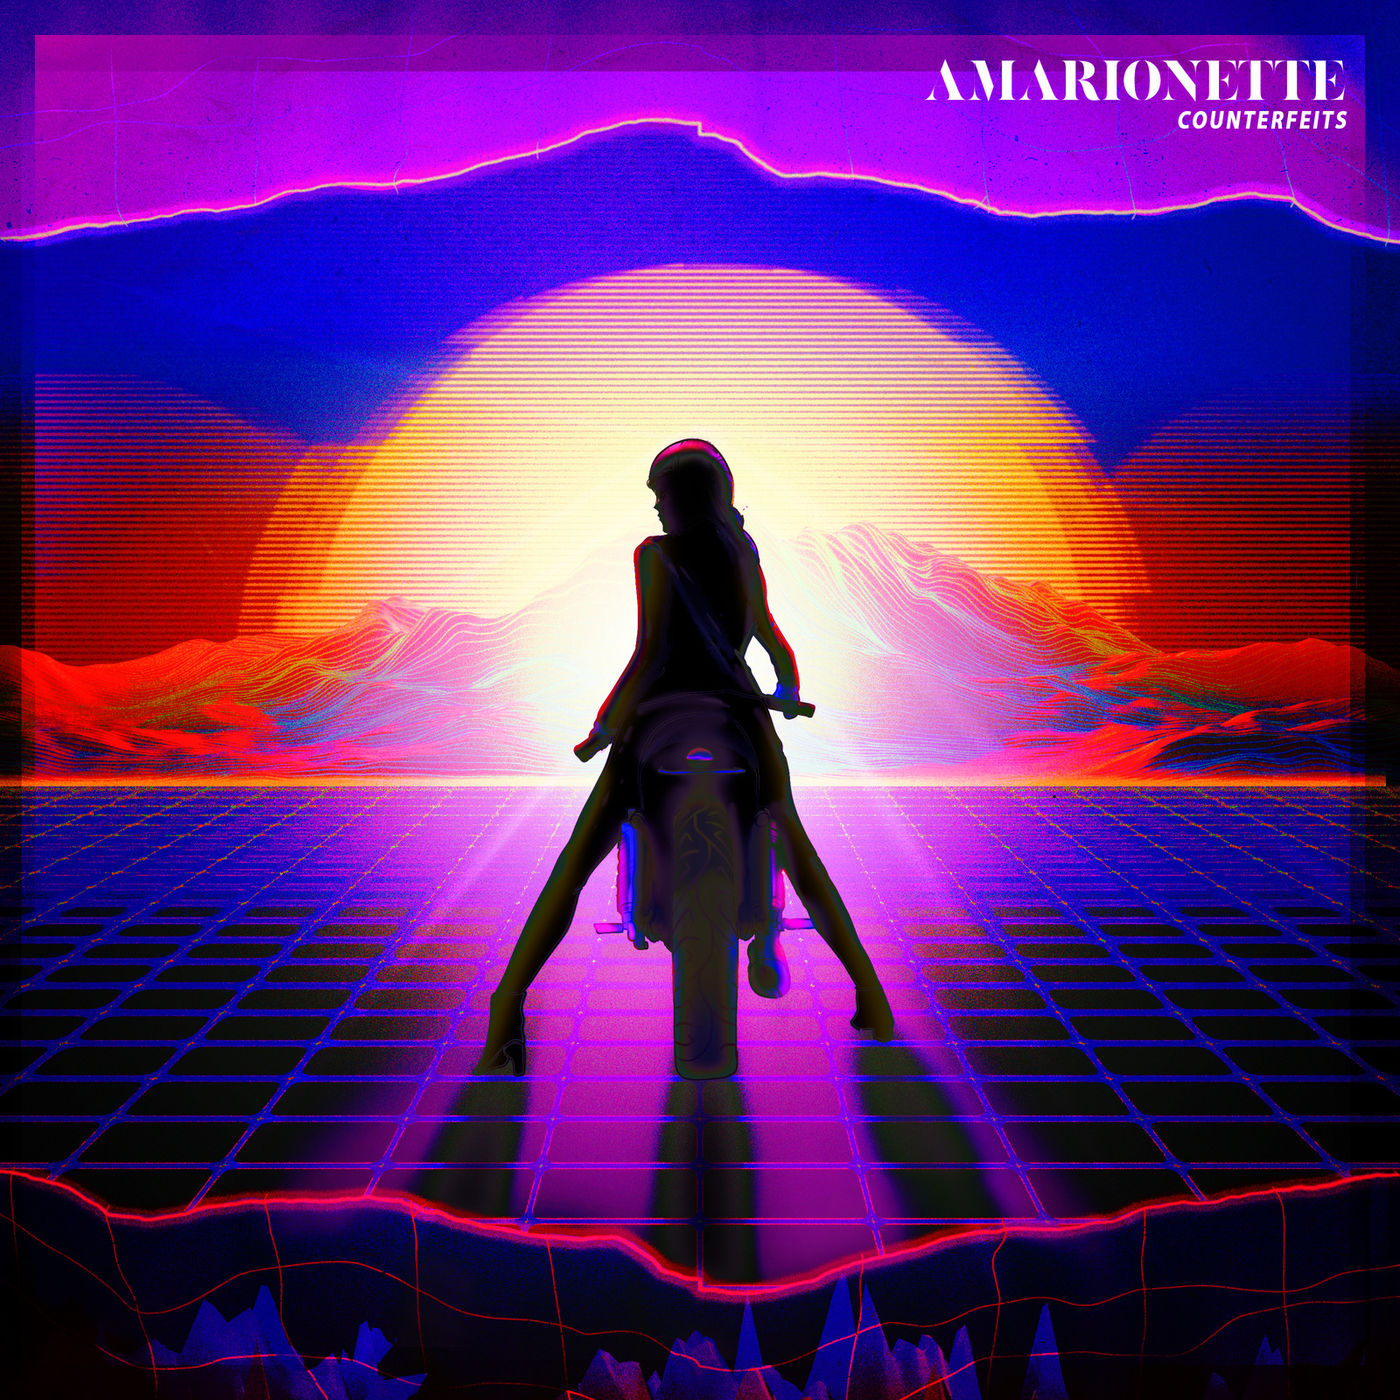 Amarionette - Counterfeits [single] (2020)